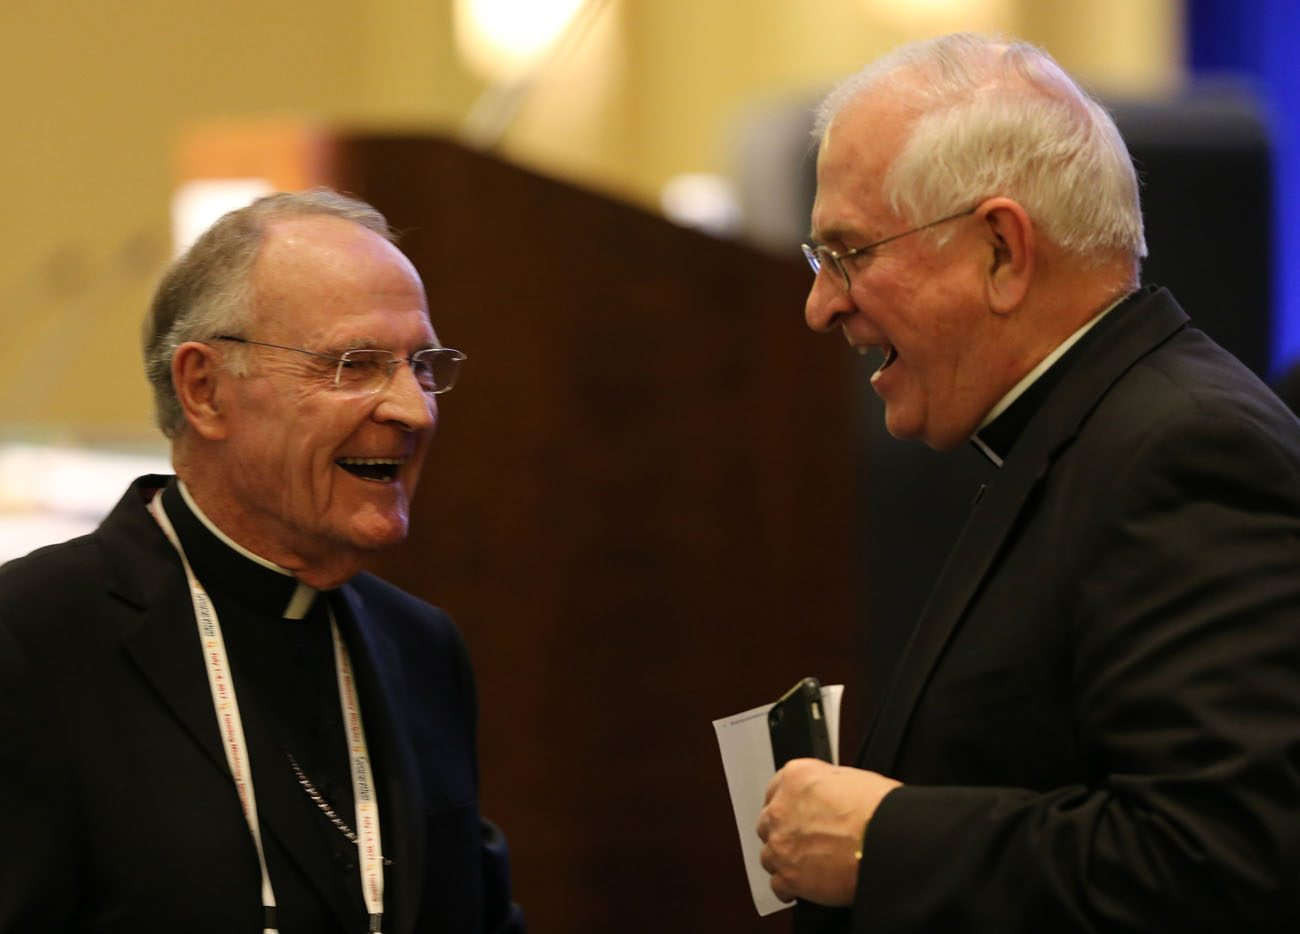 Archbishop Joseph E. Kurtz of Louisville, Ky., outgoing president of the U.S. Conference of Catholic Bishops, speaks with another prelate Nov. 14 during the bishops' annual fall general assembly in Baltimore. (CNS photo/Bob Roller) .